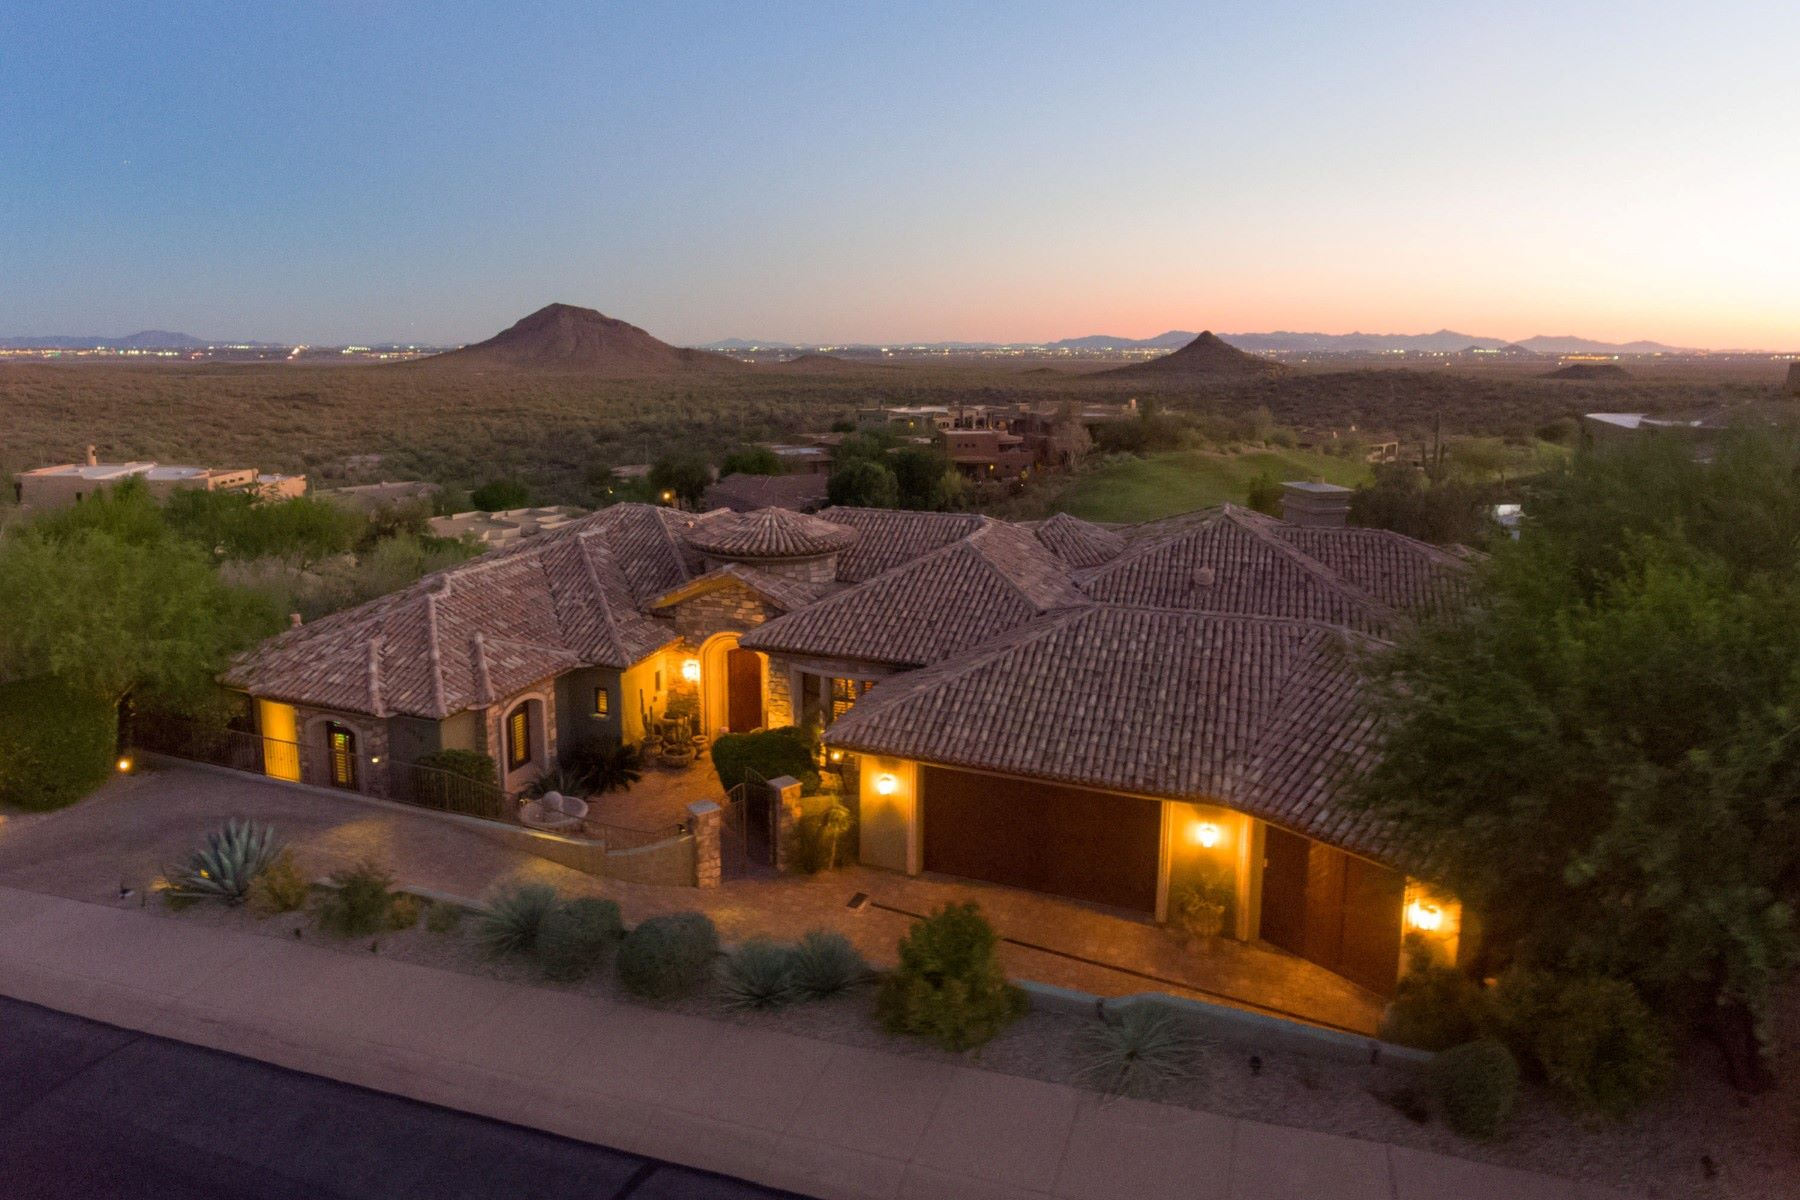 Single Family Home for Sale at Lavish customized estate in Fountain Hills 15210 E Czmelview Dr Fountain Hills, Arizona, 85268 United States